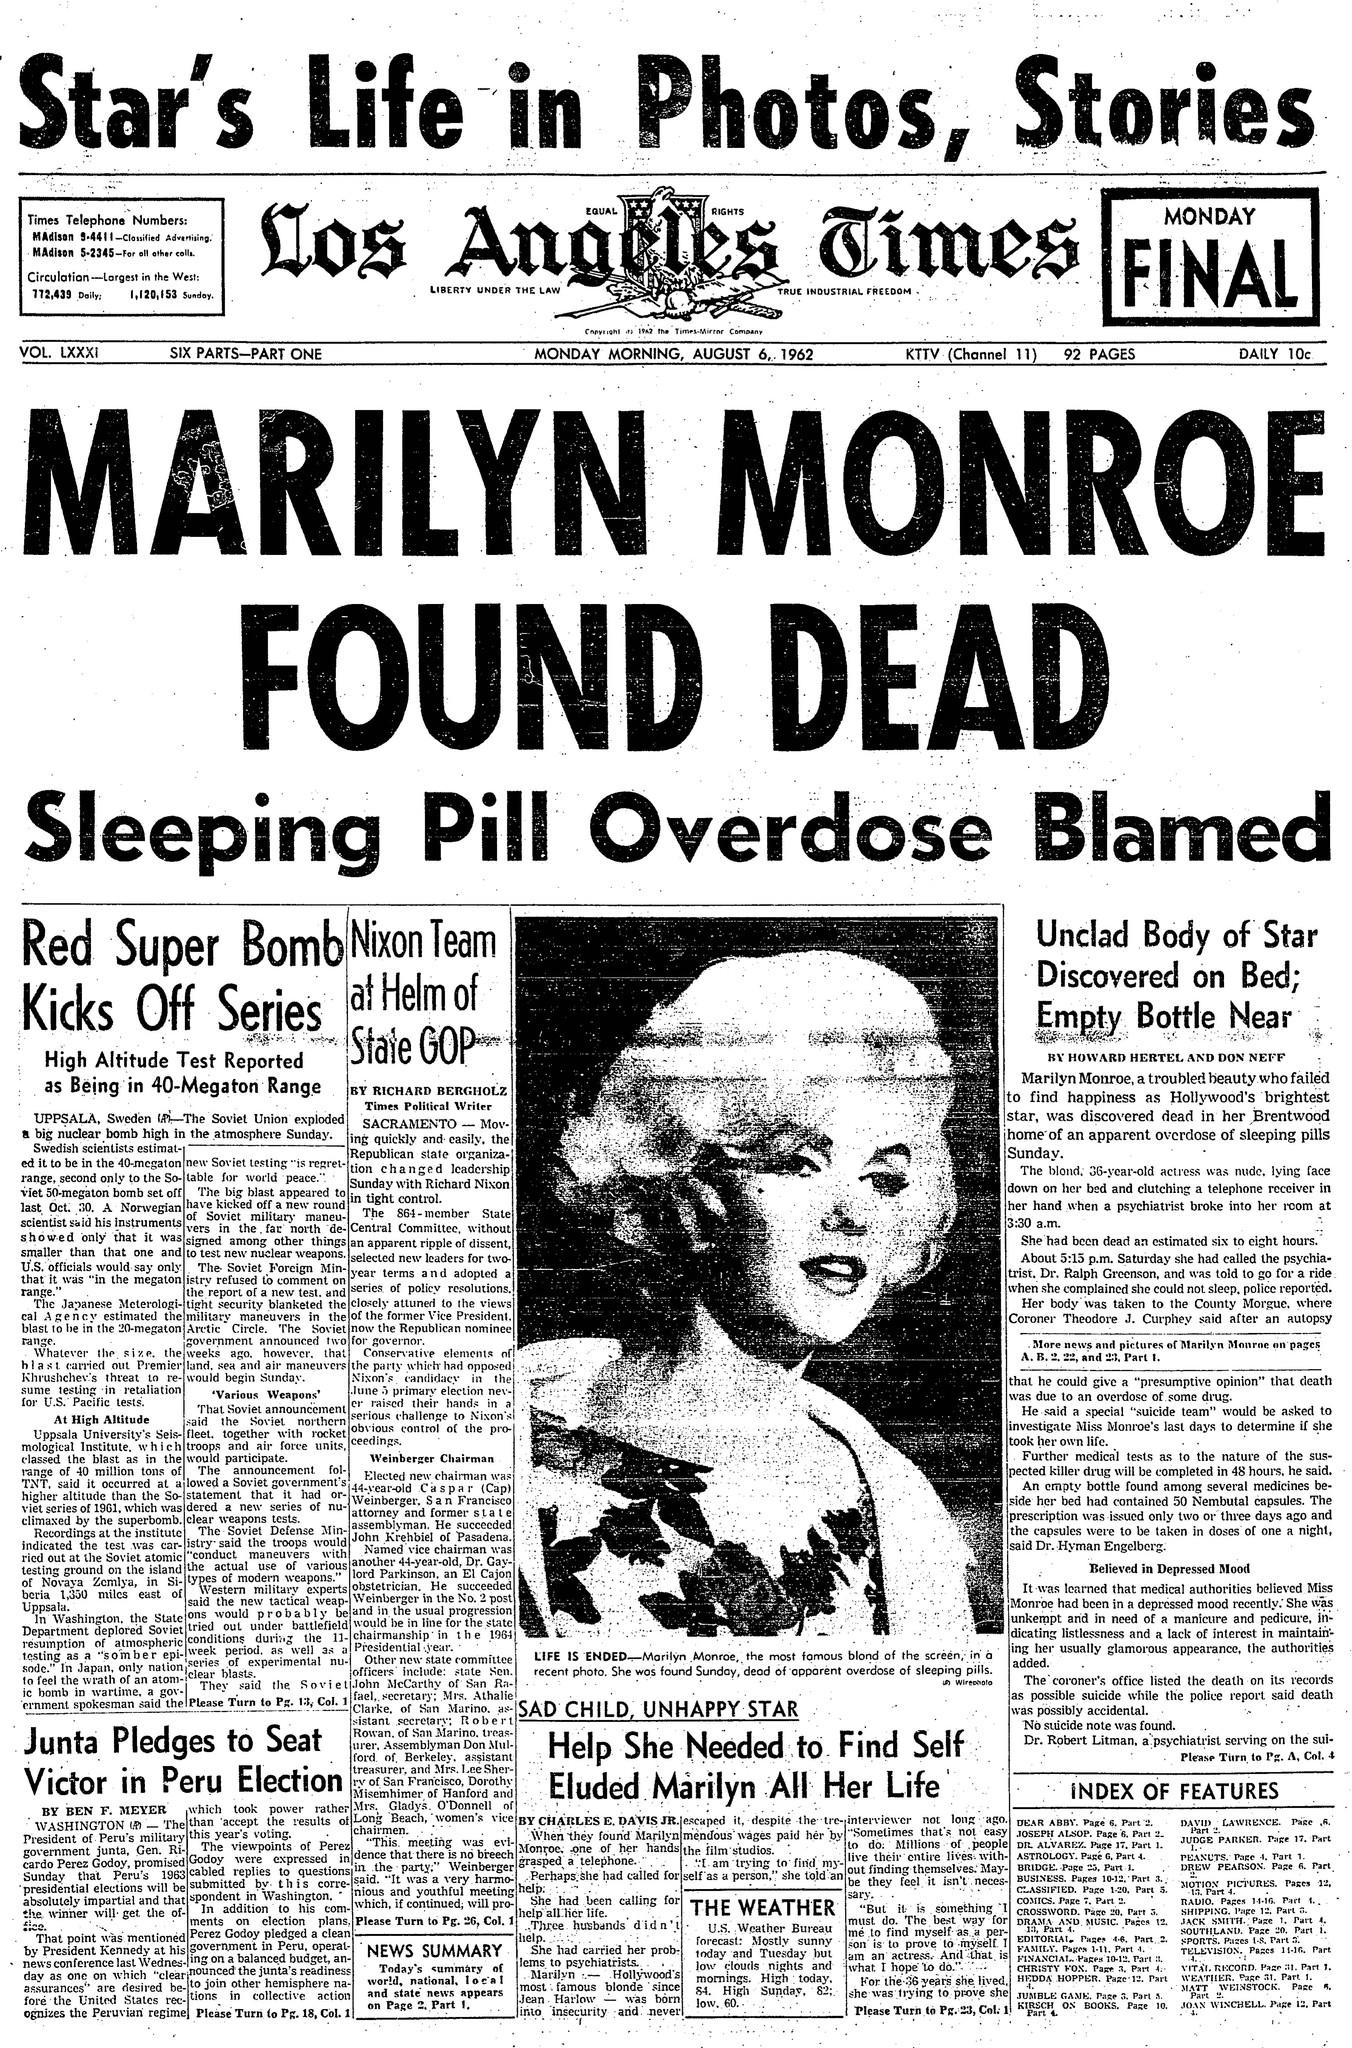 Marilyn Monroe's death - Los Angeles Times